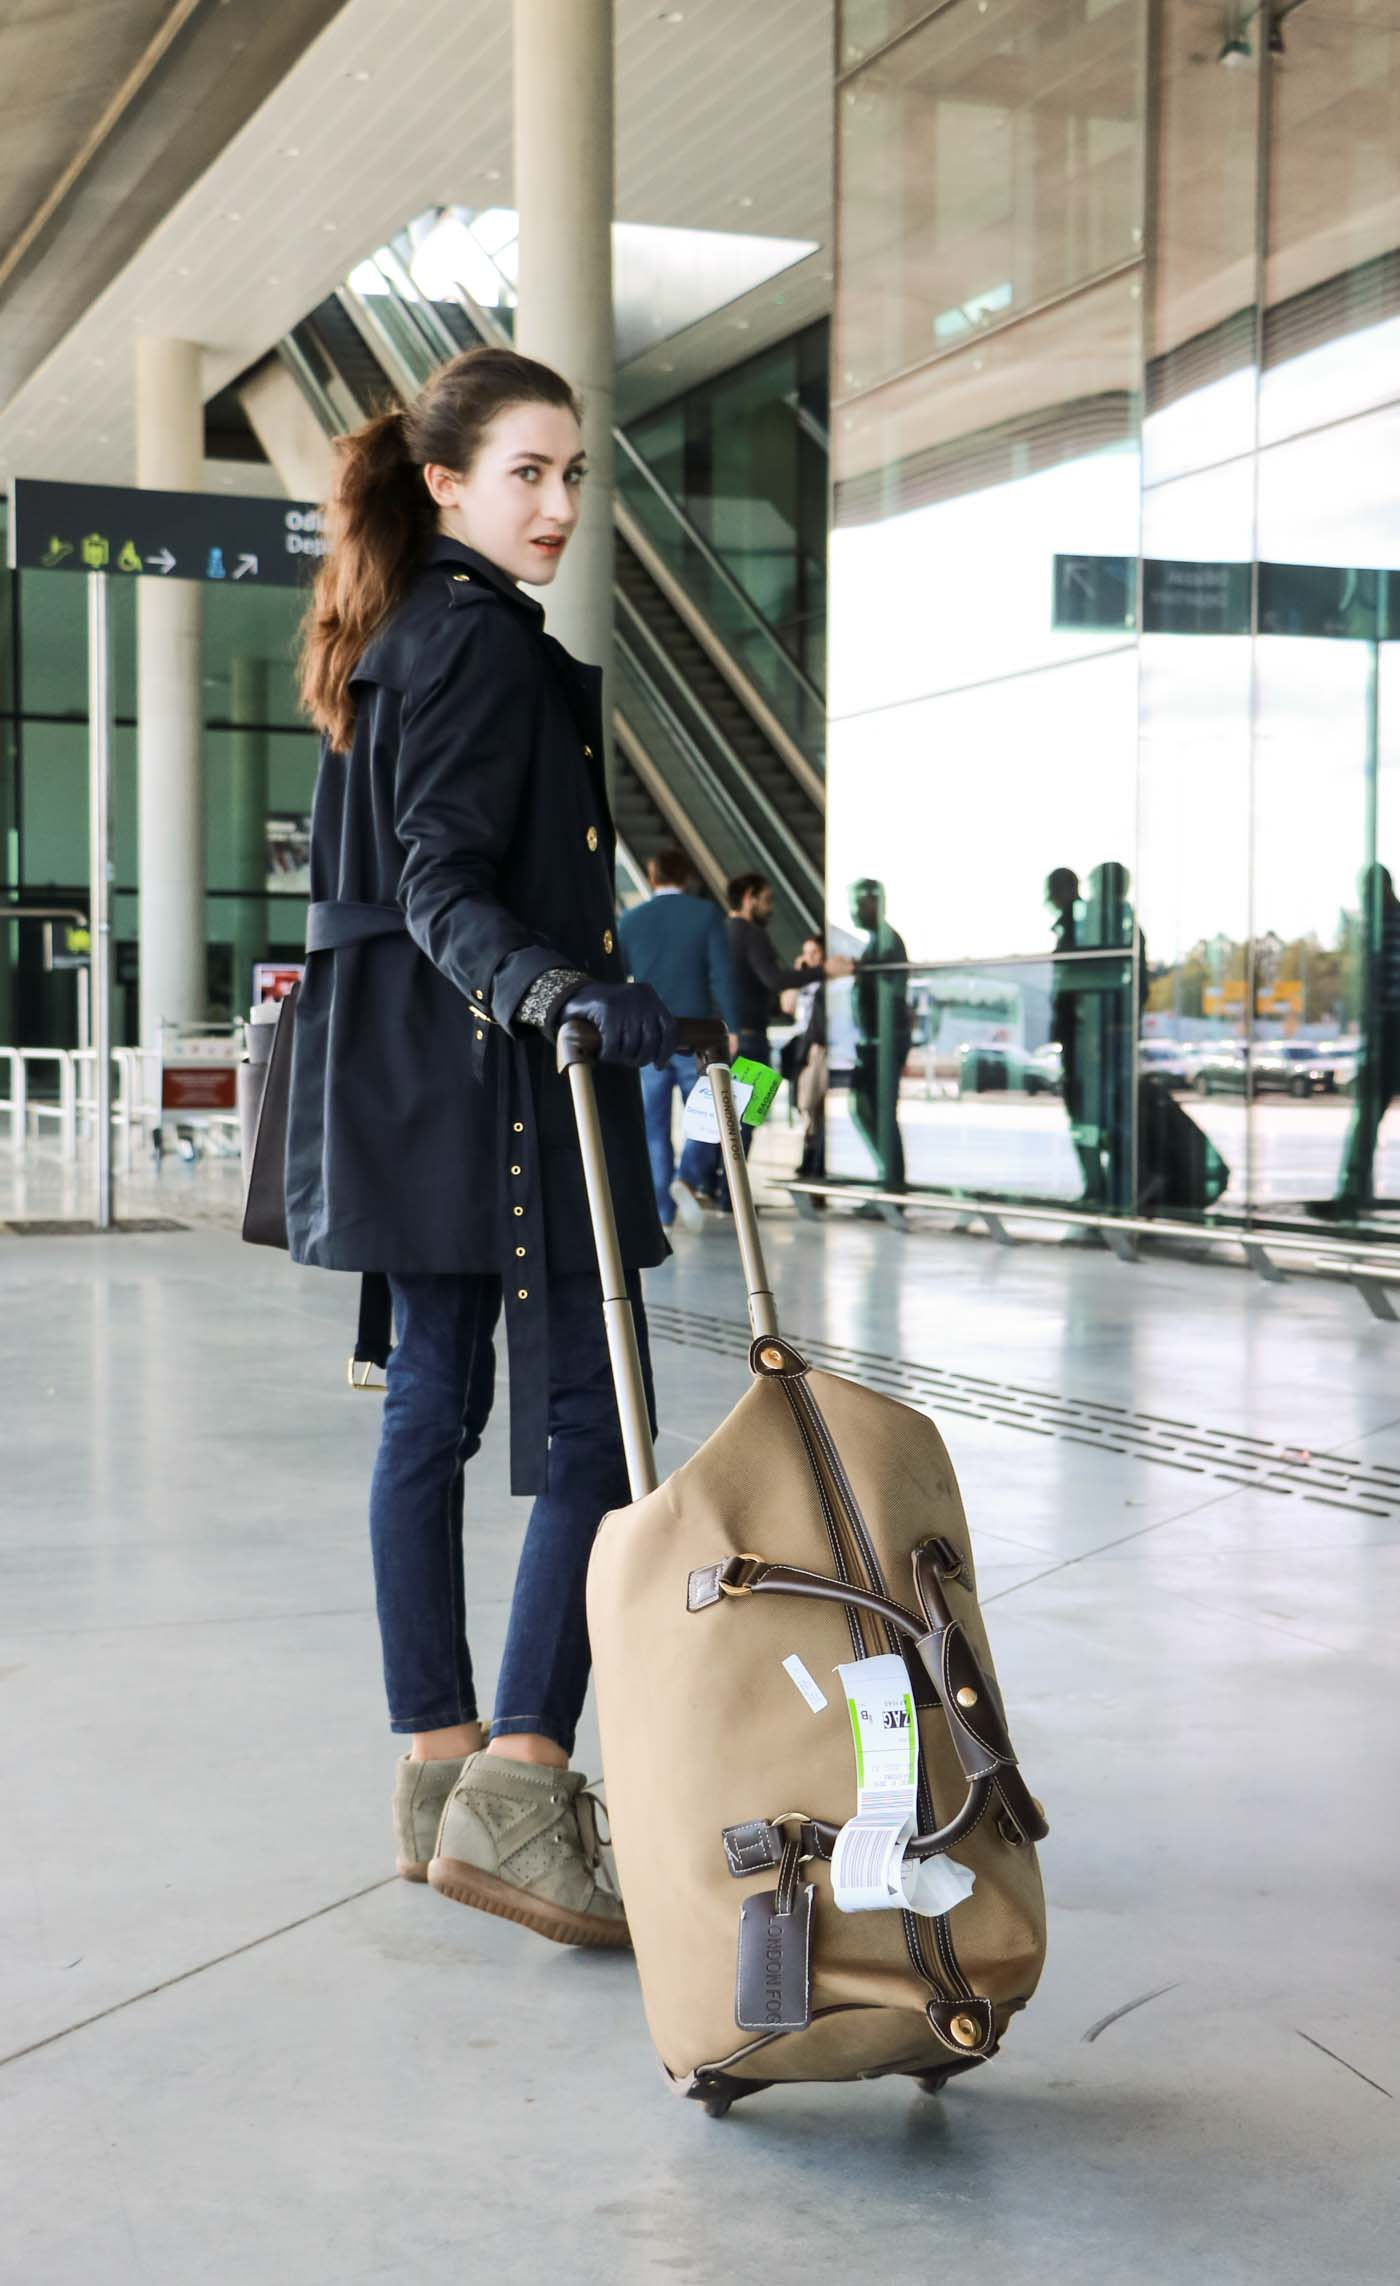 Fashion Blogger Veronika Lipar of Brunette from Wall Street at the airport